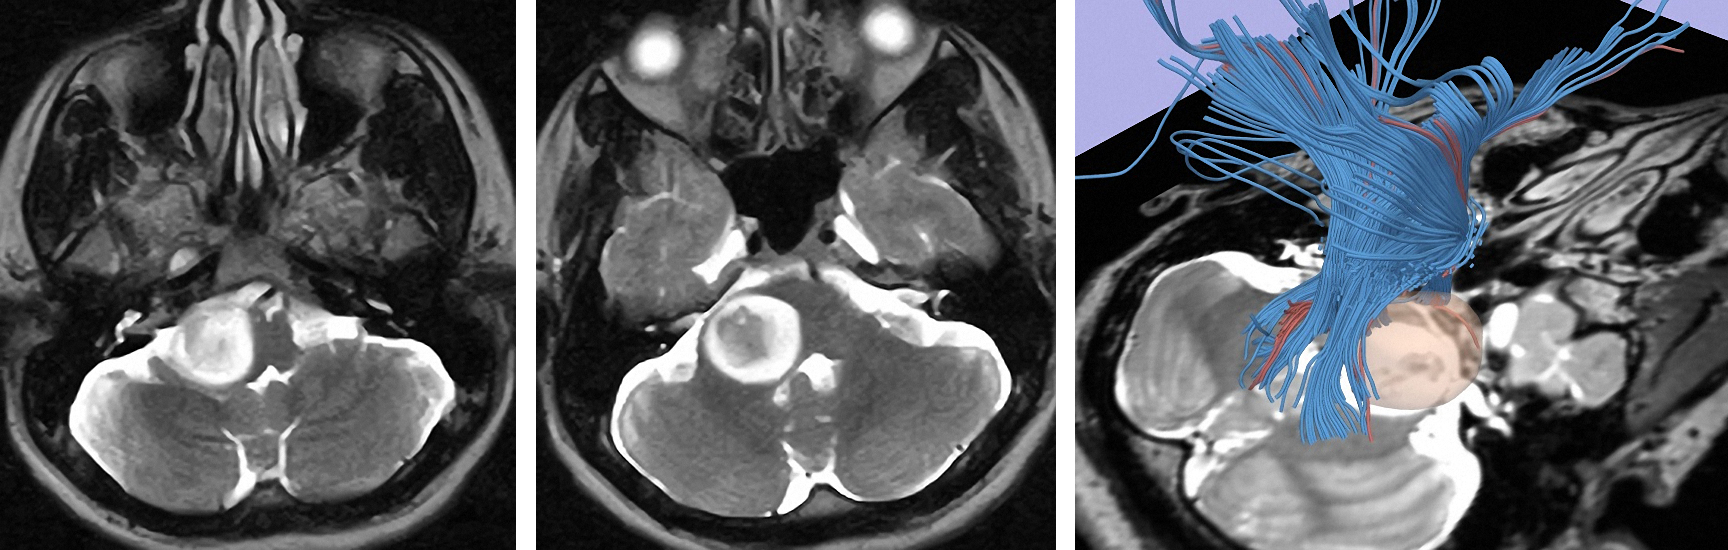 Figure 8: A lateral exophytic pontomedullary low-grade glioma is apparent. The patient was asymptomatic and this tumor was managed expectantly. Note the displacement of the brainstem fibers by the tumor on diffusion tensor imaging (right image).